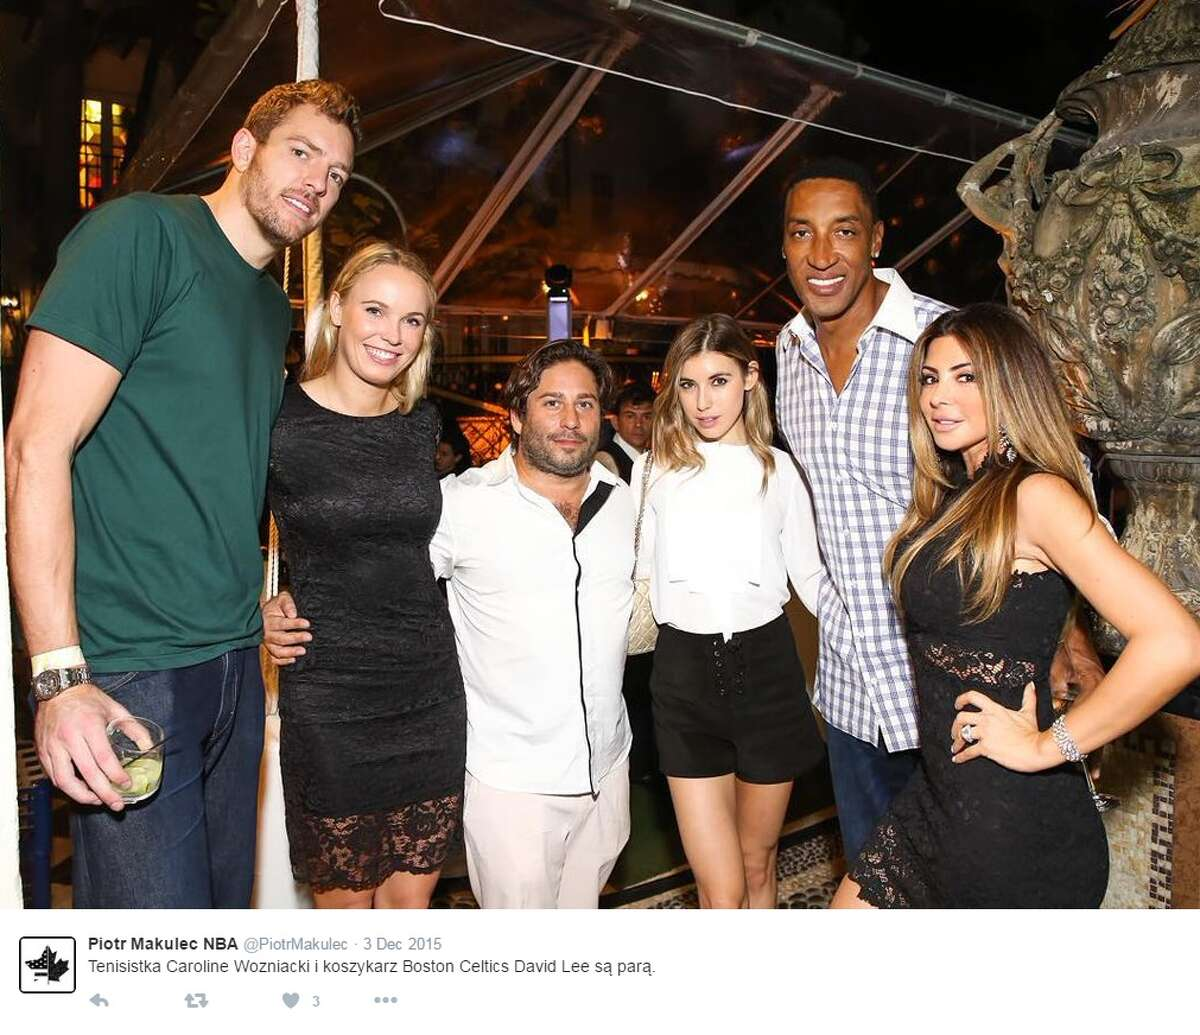 Twitter accounts shared a photo taken at the Art Basel in Miami last winter showing Wozniacki and Lee beside Scottie Pippen and his wife Larsa.